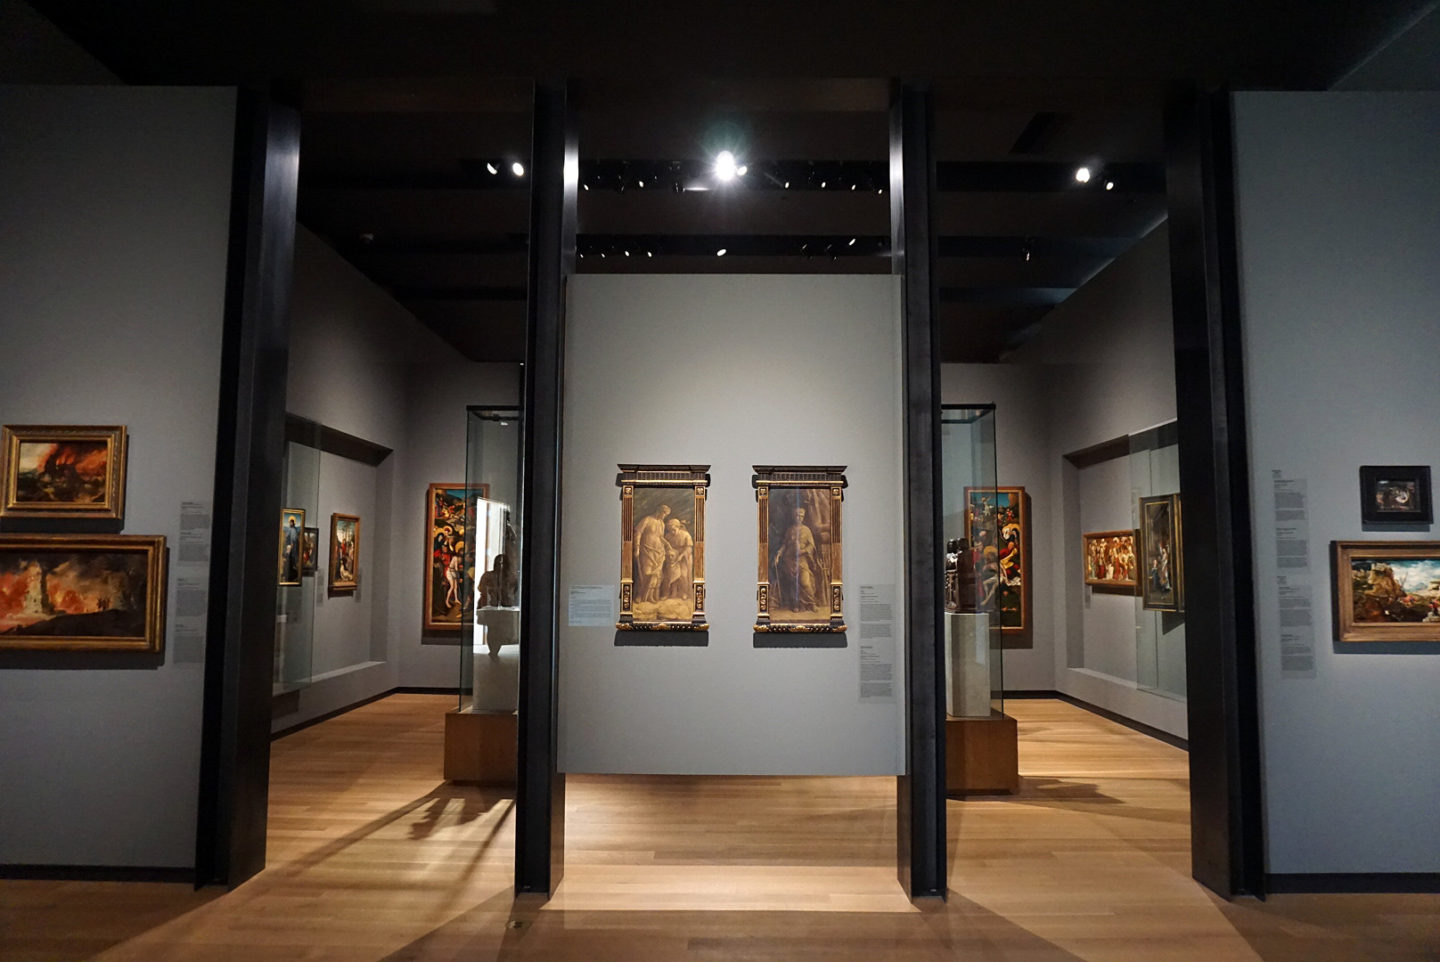 Travel With Me To: Montreal Museum of Fine Arts